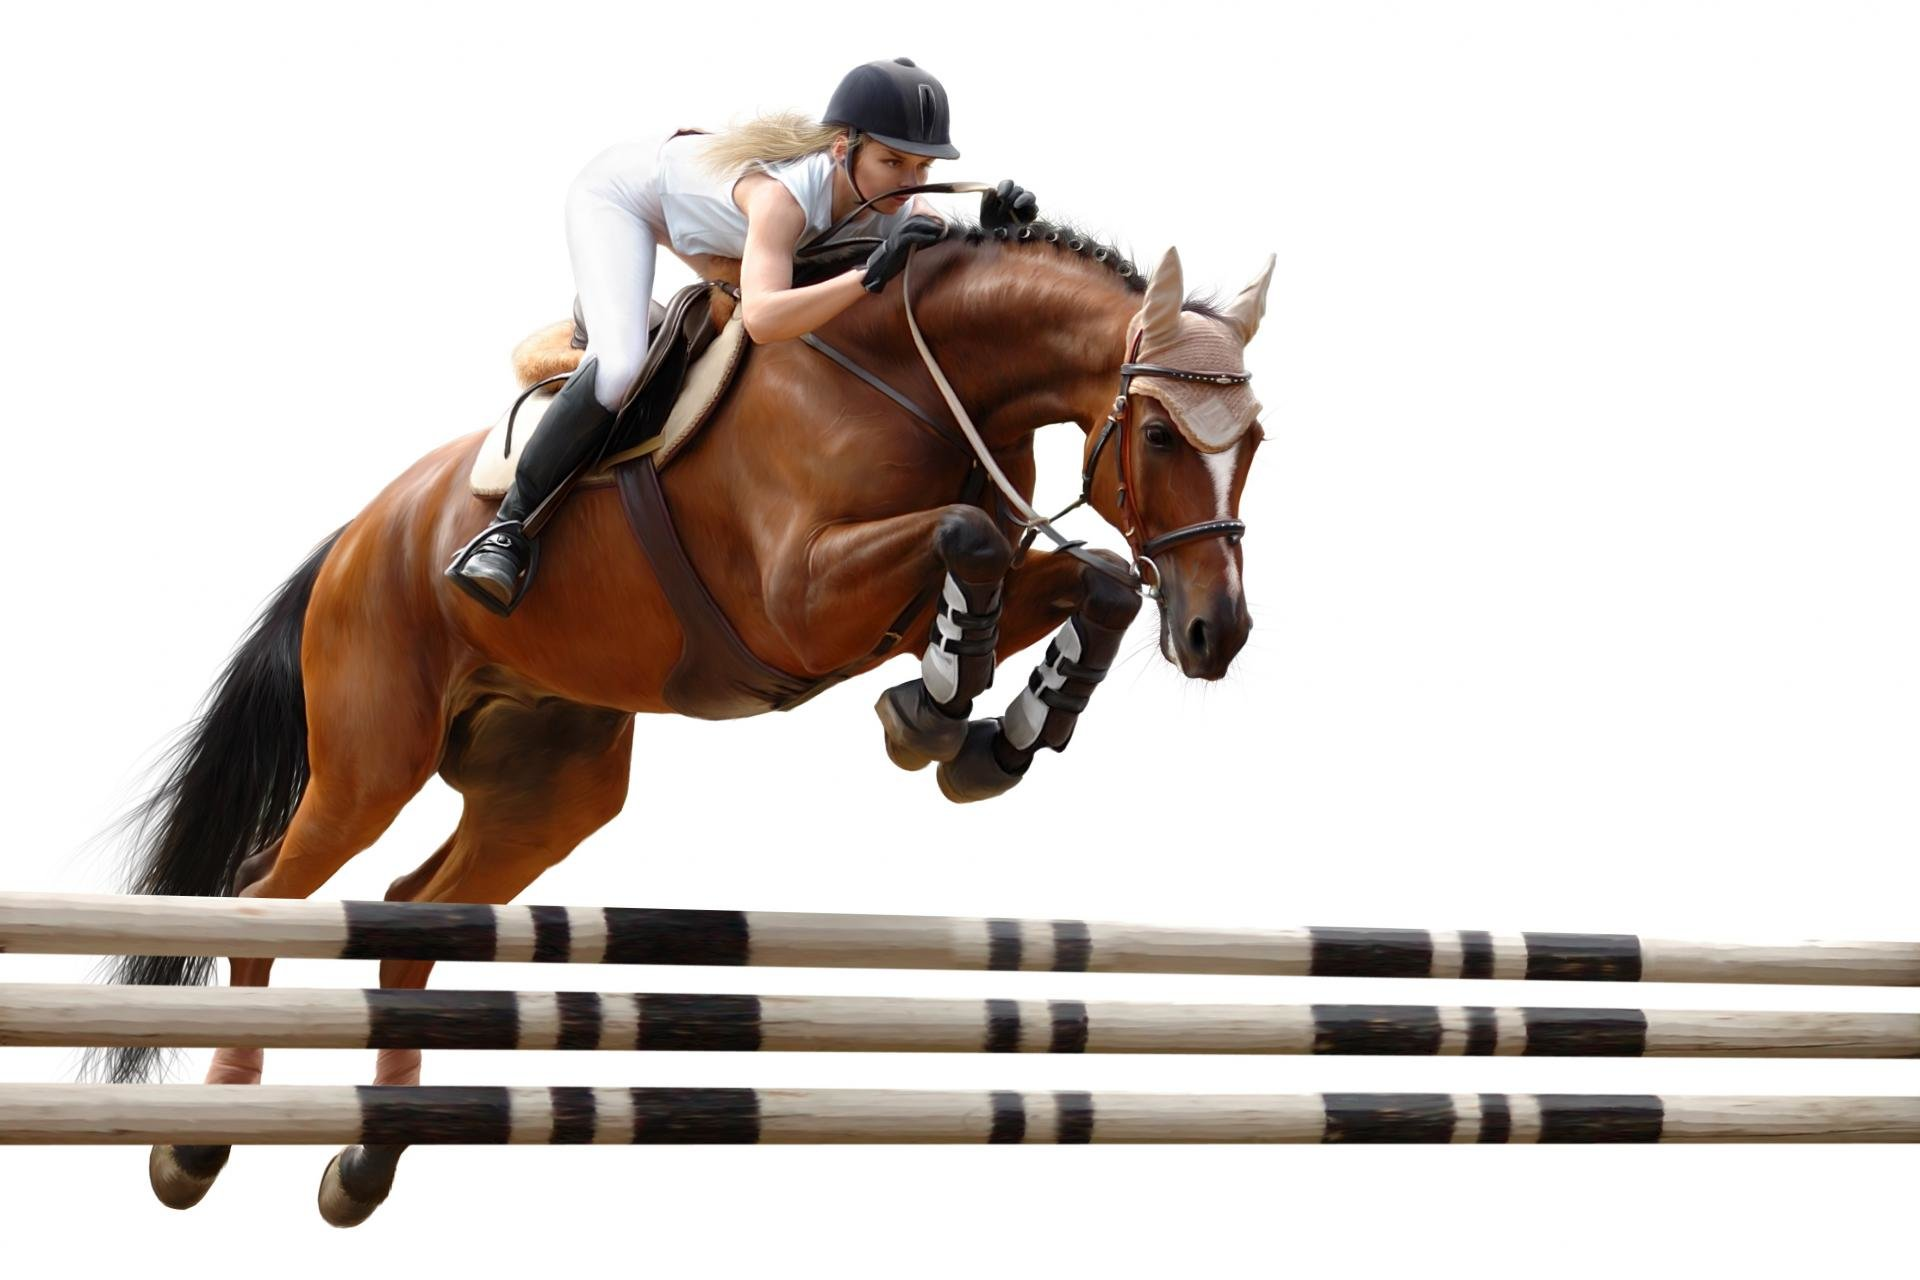 Horse Jumping Wallpapers Hd For Desktop Backgrounds